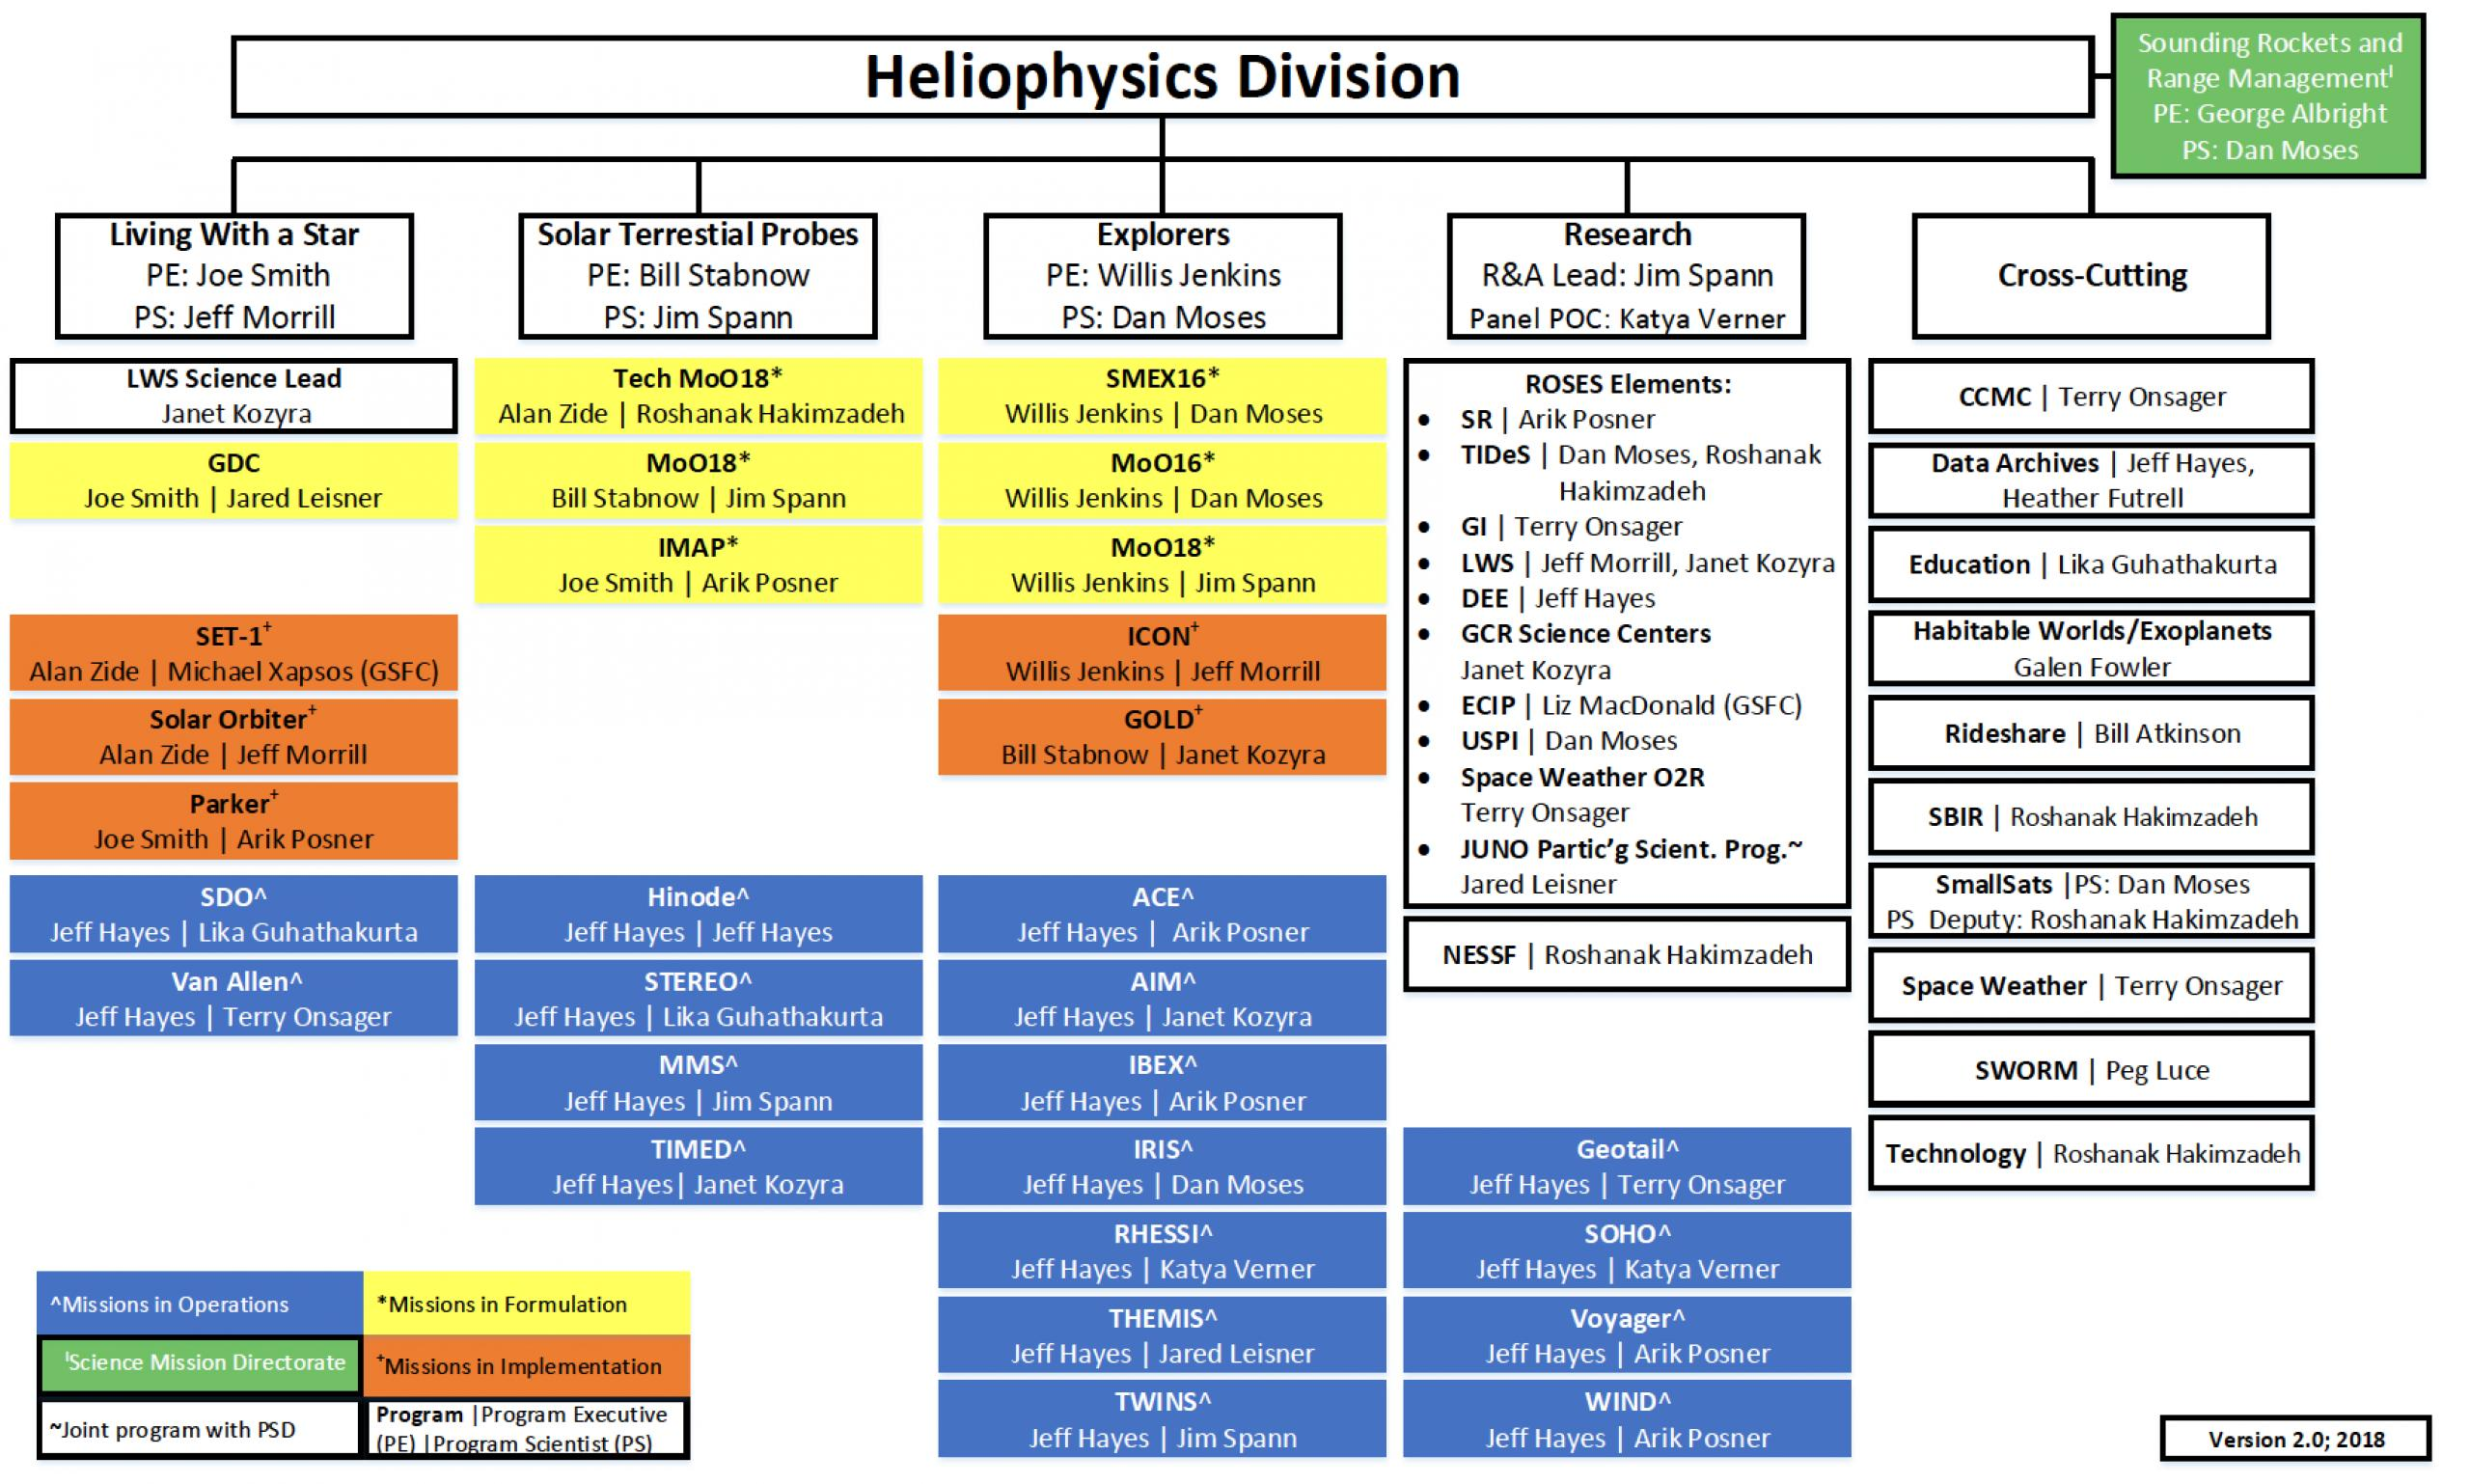 helio-division-2.png